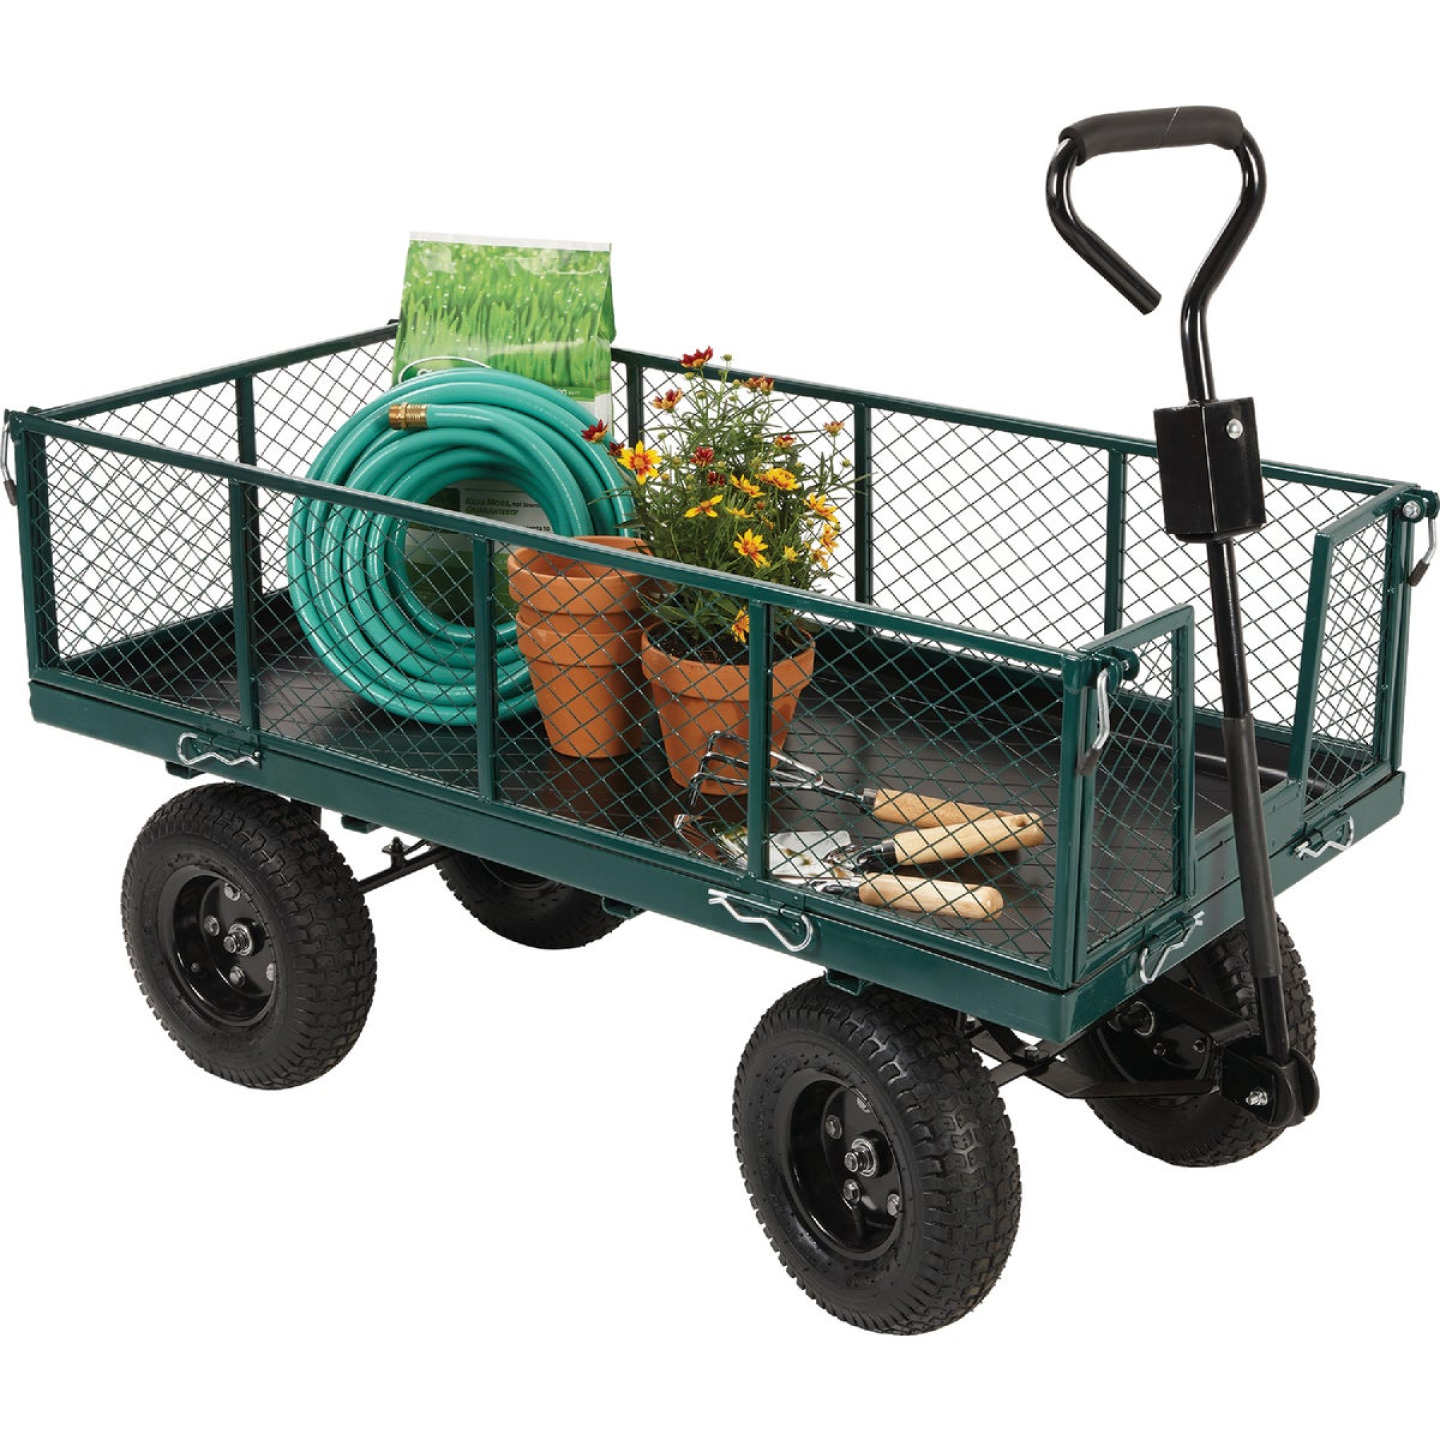 Best Garden 1000 Lb. Steel Garden Cart with Collapsible Sides Image 2